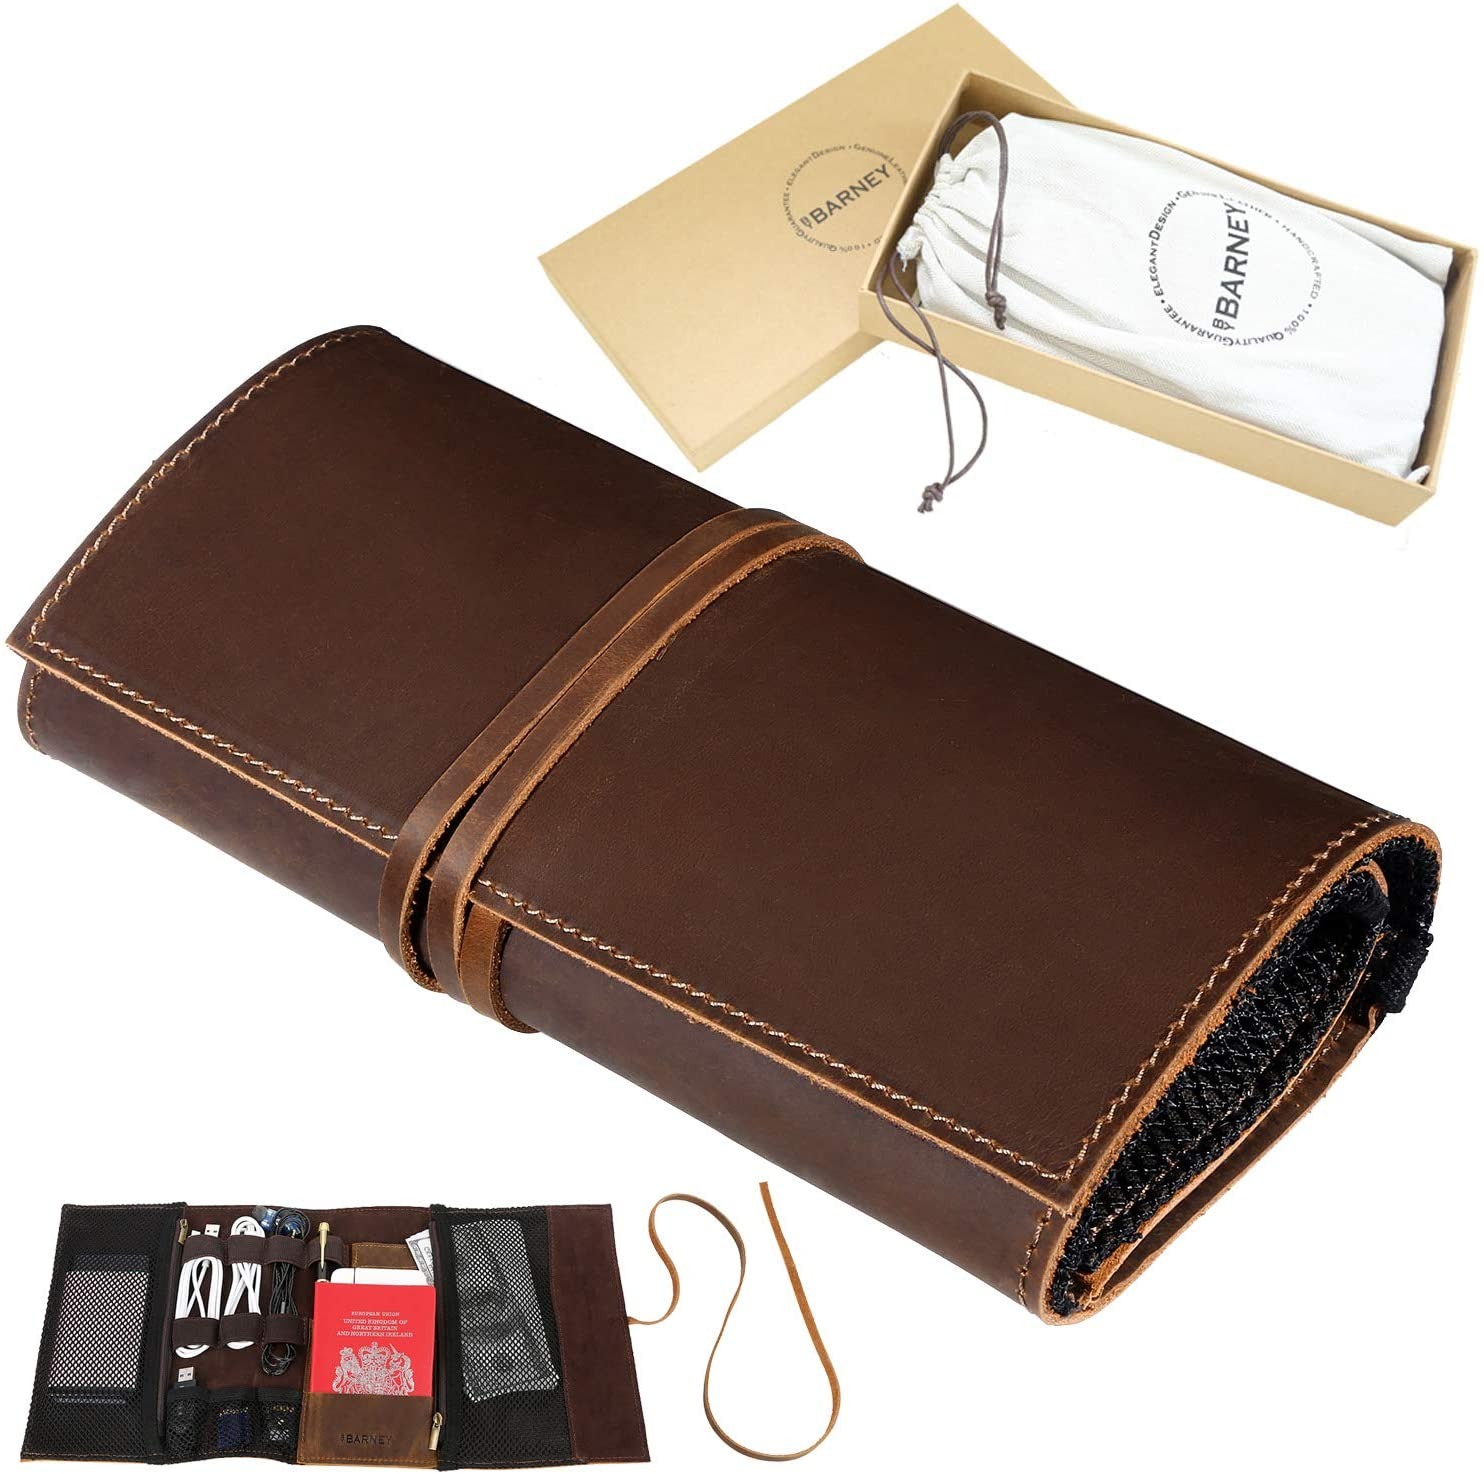 Leather Headphone Case Leather Cable Tidy